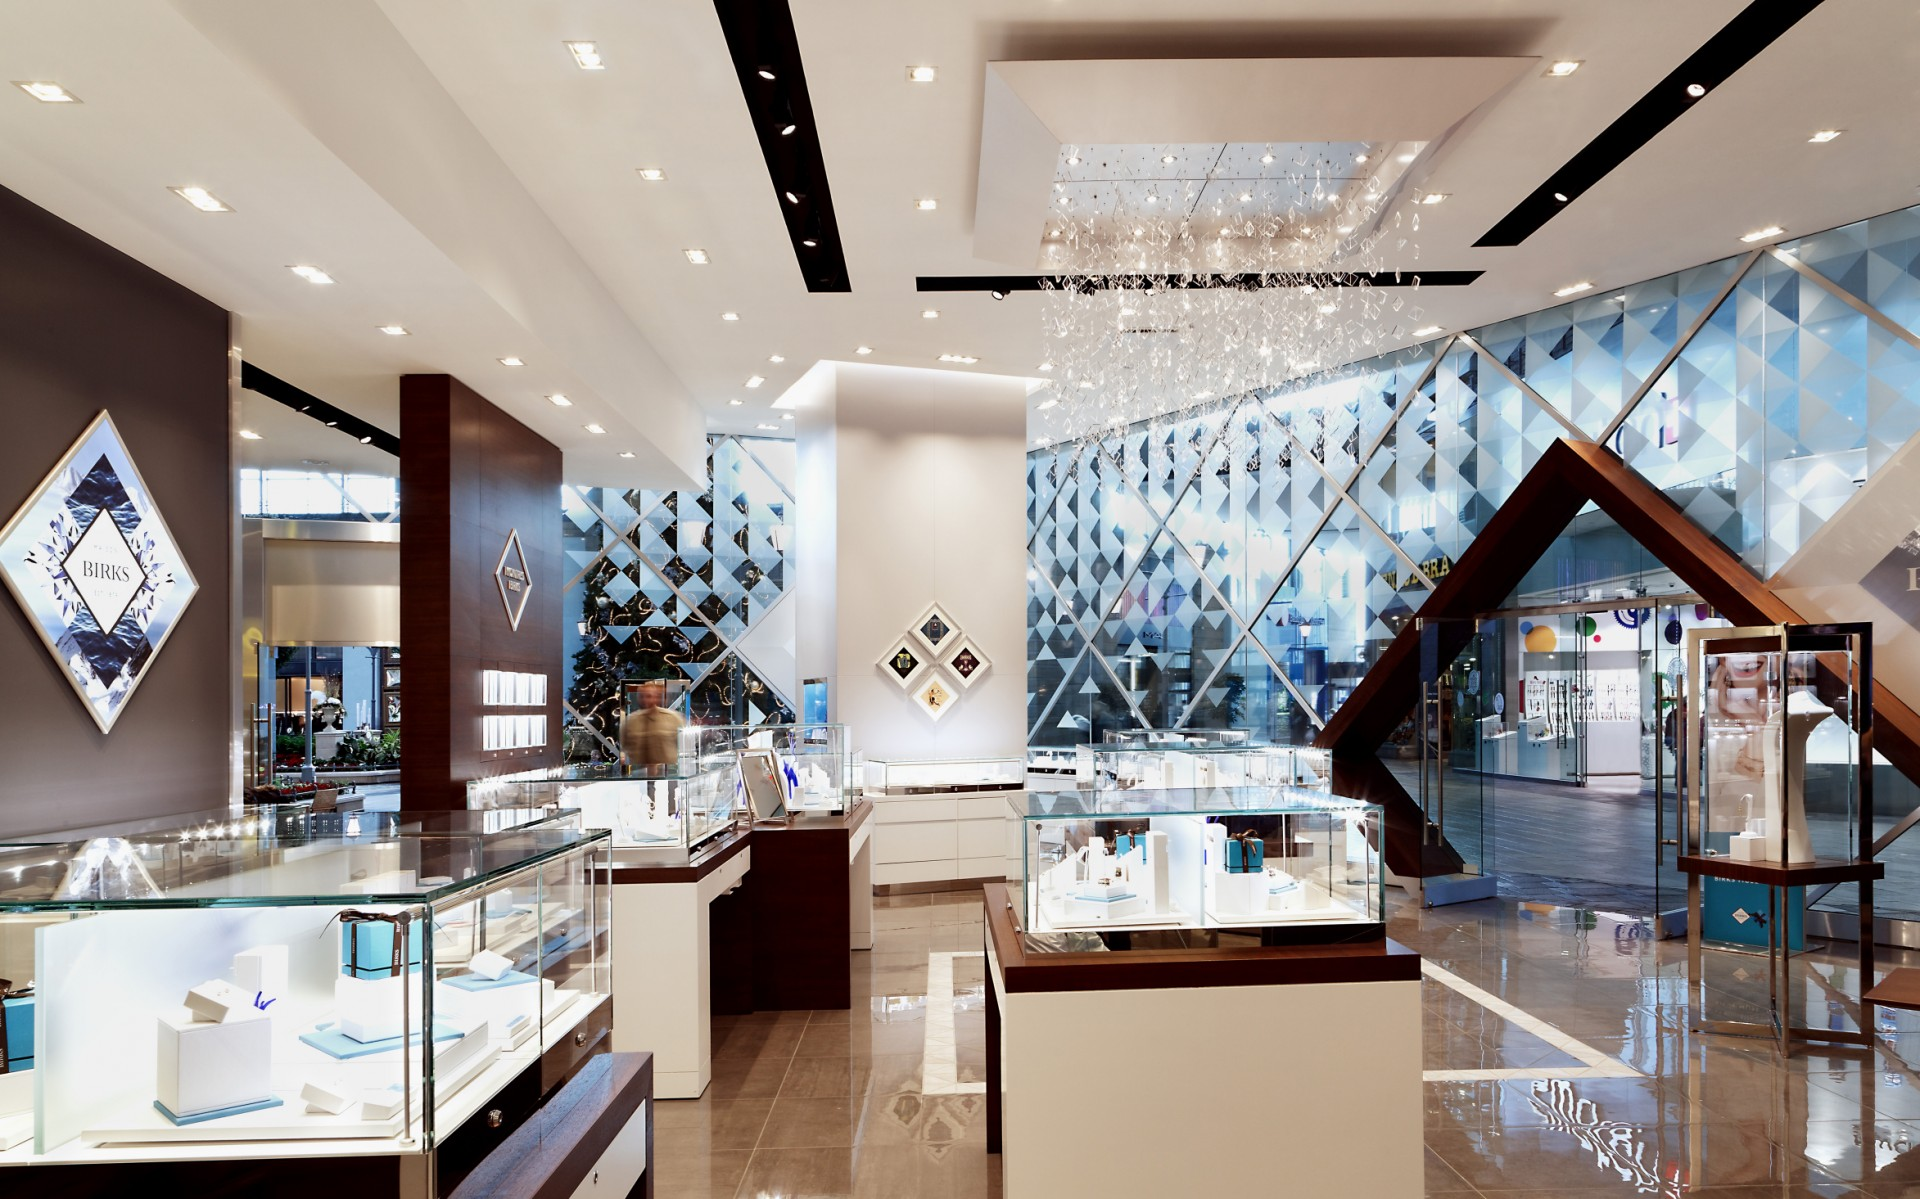 First opened in 1879, Birks is Canada's first jewelry chain.